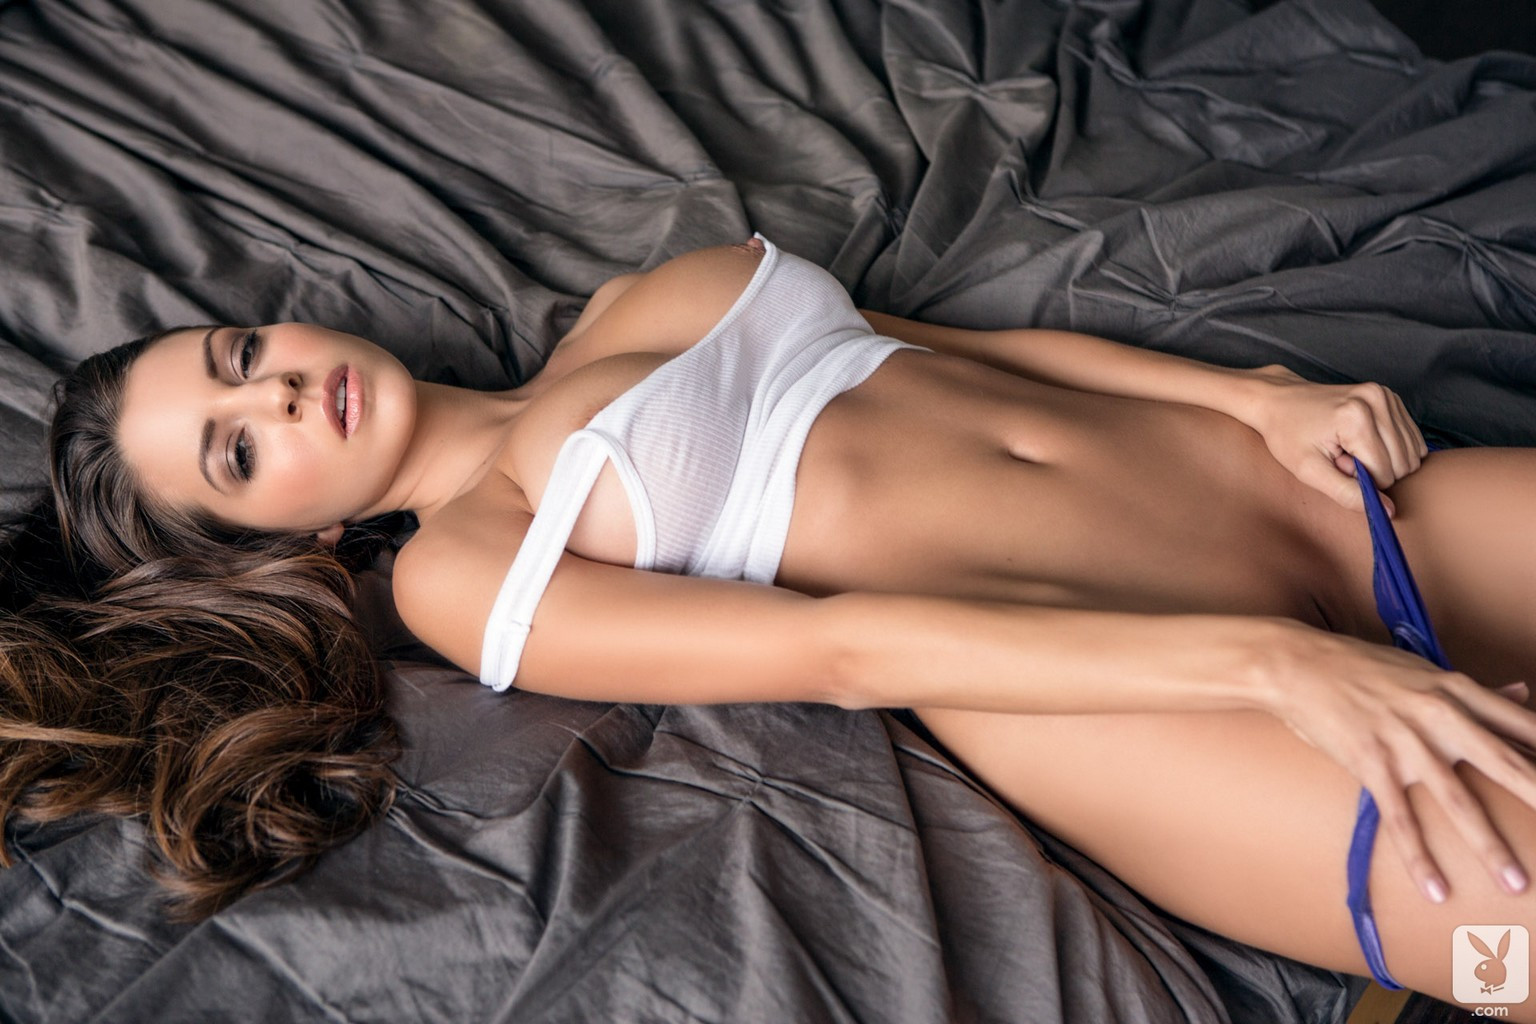 Shelby Chesnes Nude fappenings.com 29